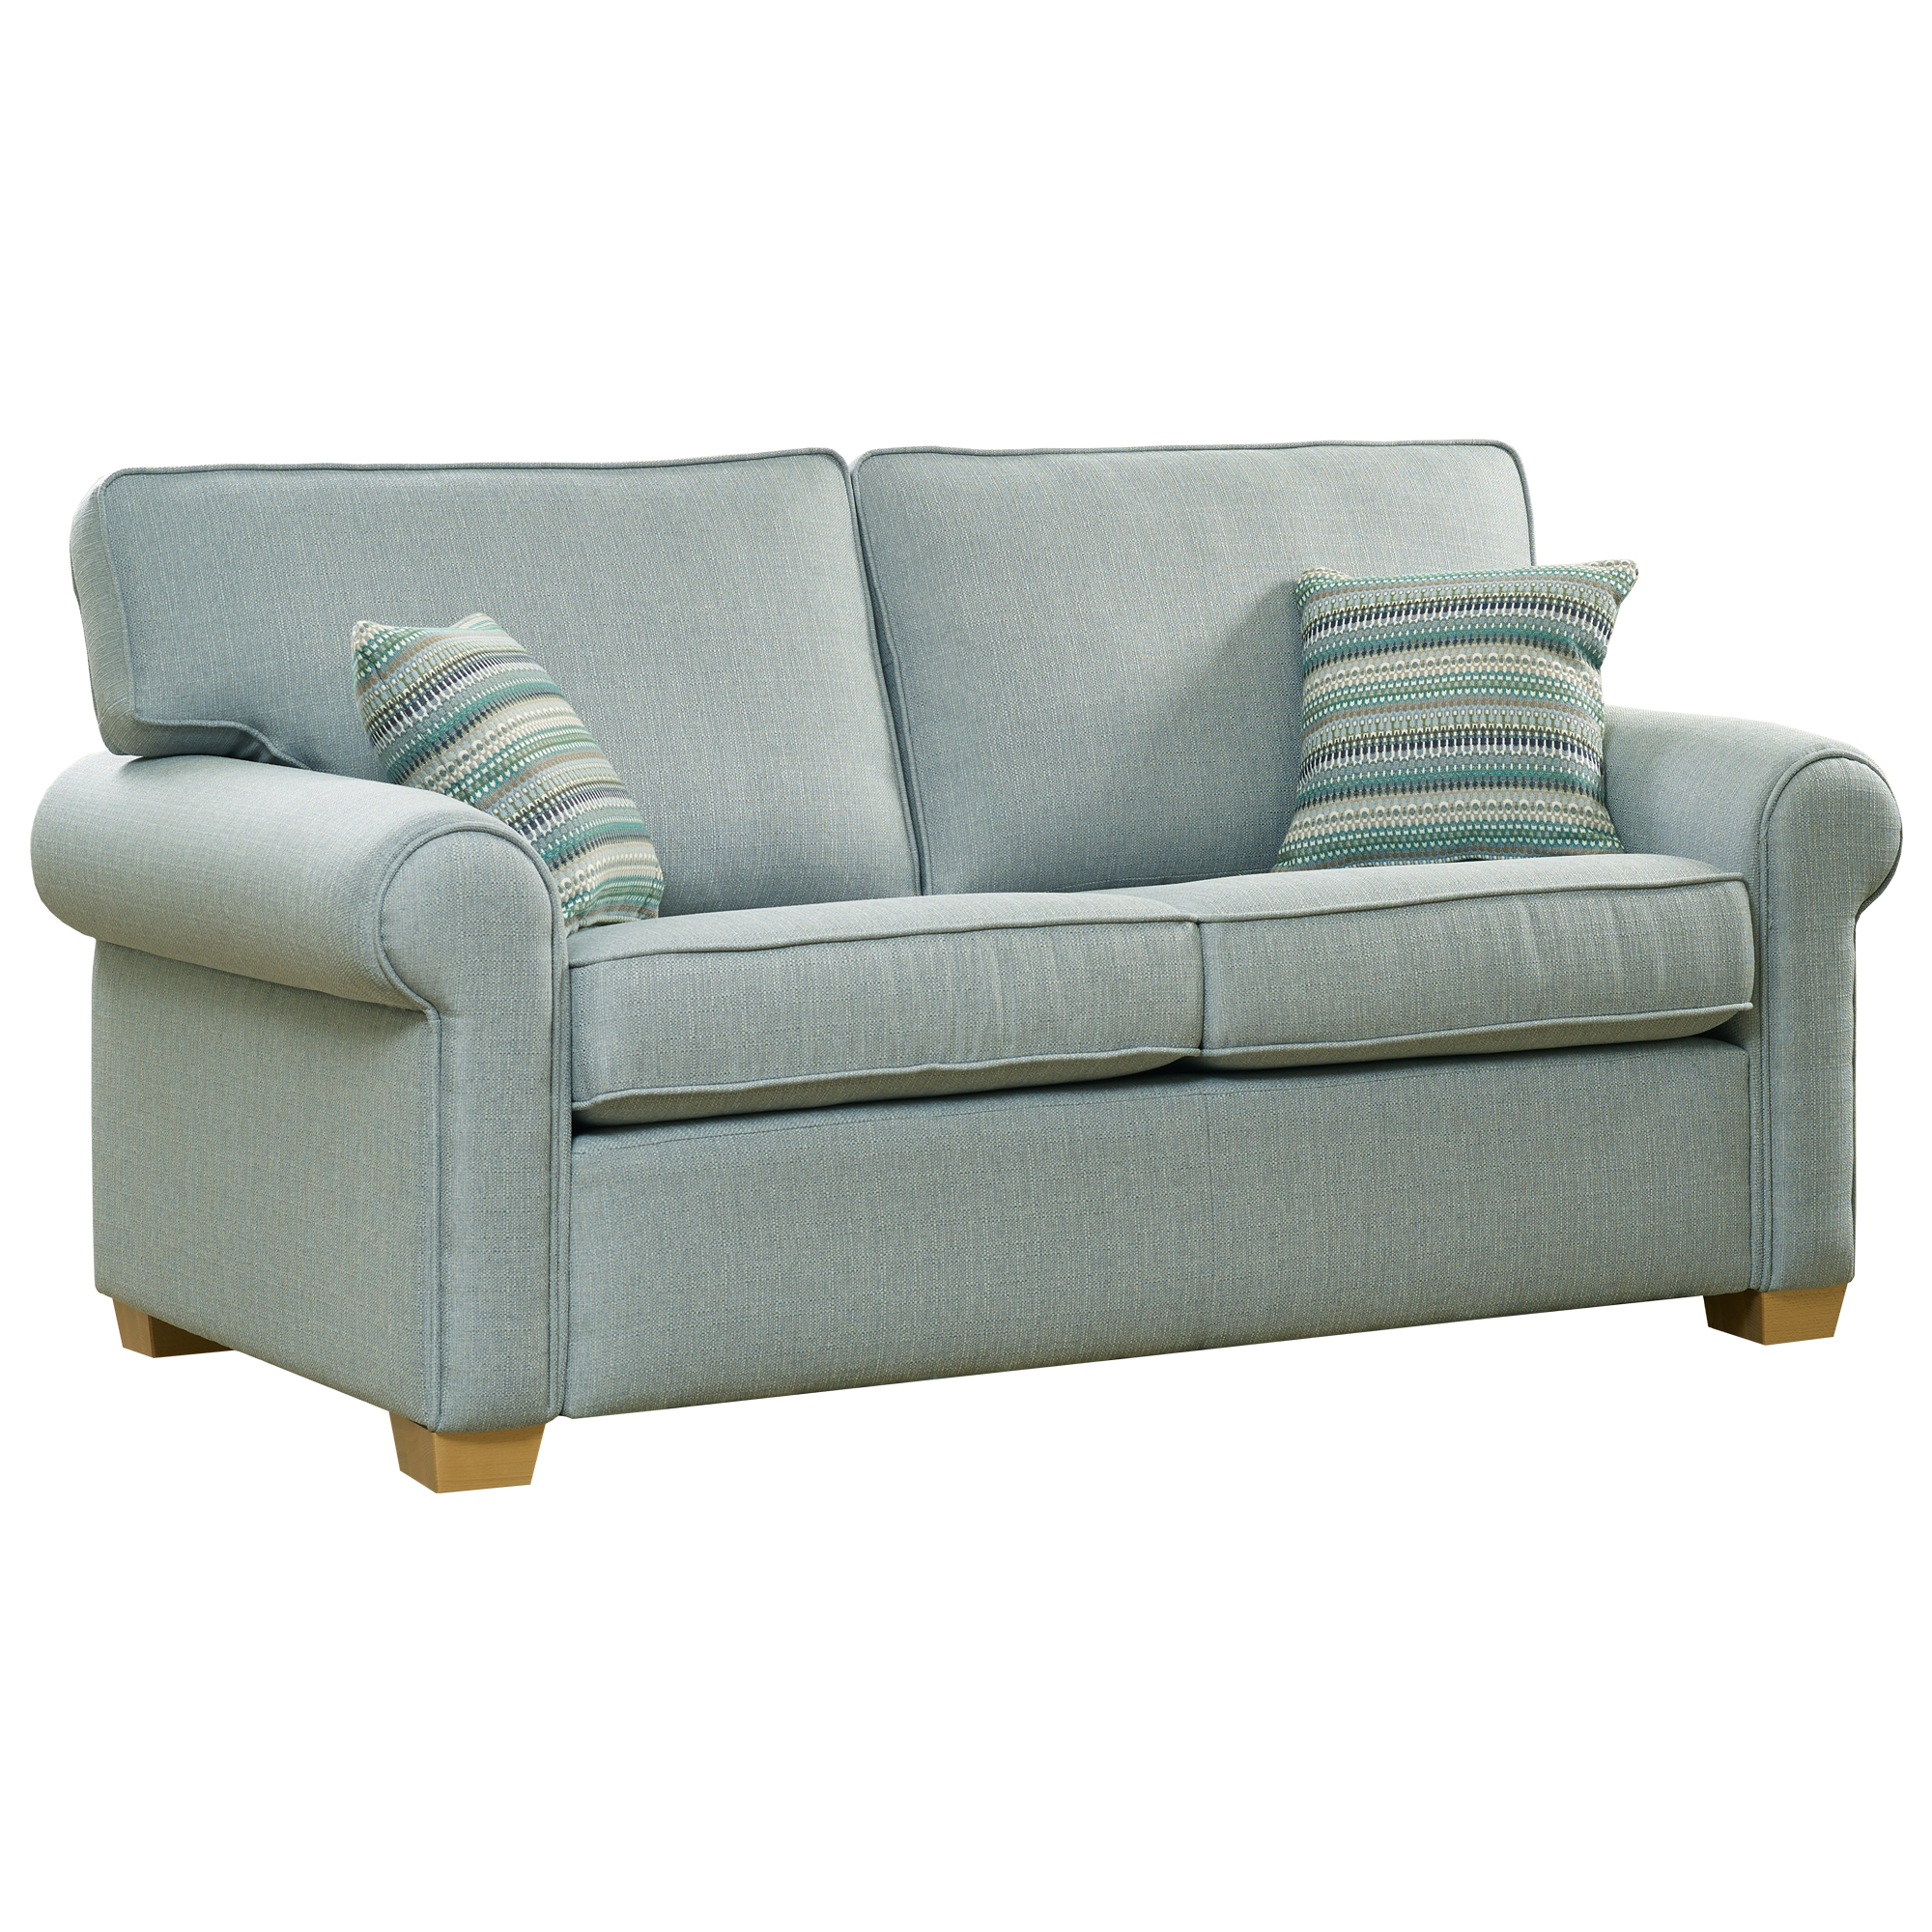 Sofa Erin Small Sofa Mark Webster Designs